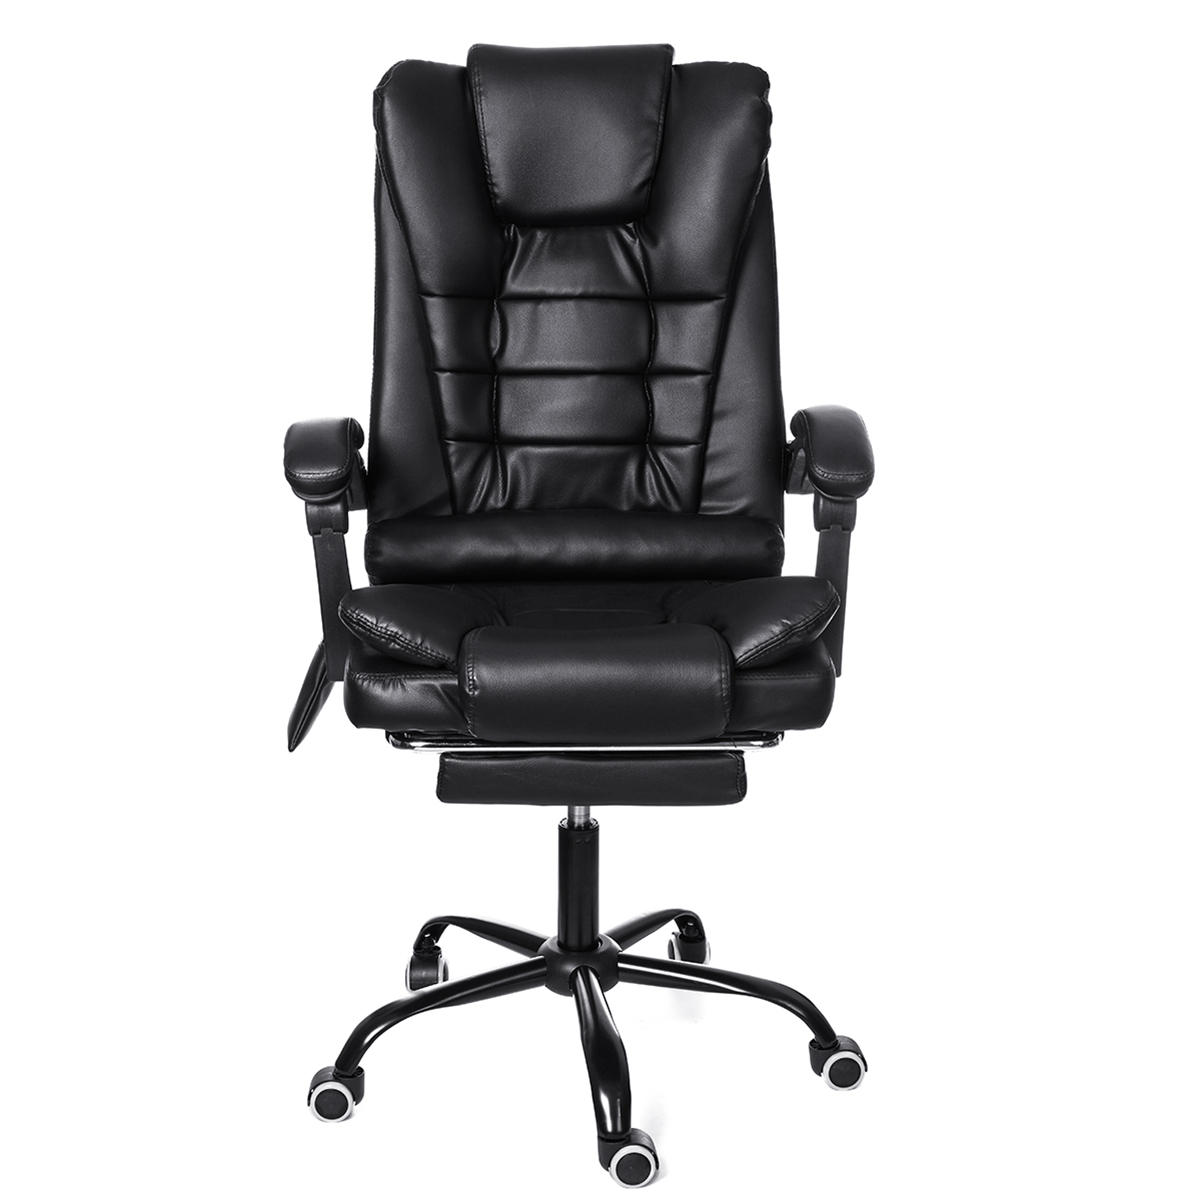 Ergonomic High Back Reclining Office Boss Chair Adjustable Height Rotating Lift Chair PU Leather Gaming Chair Laptop Desk Chair with Footrest and Phone Bag